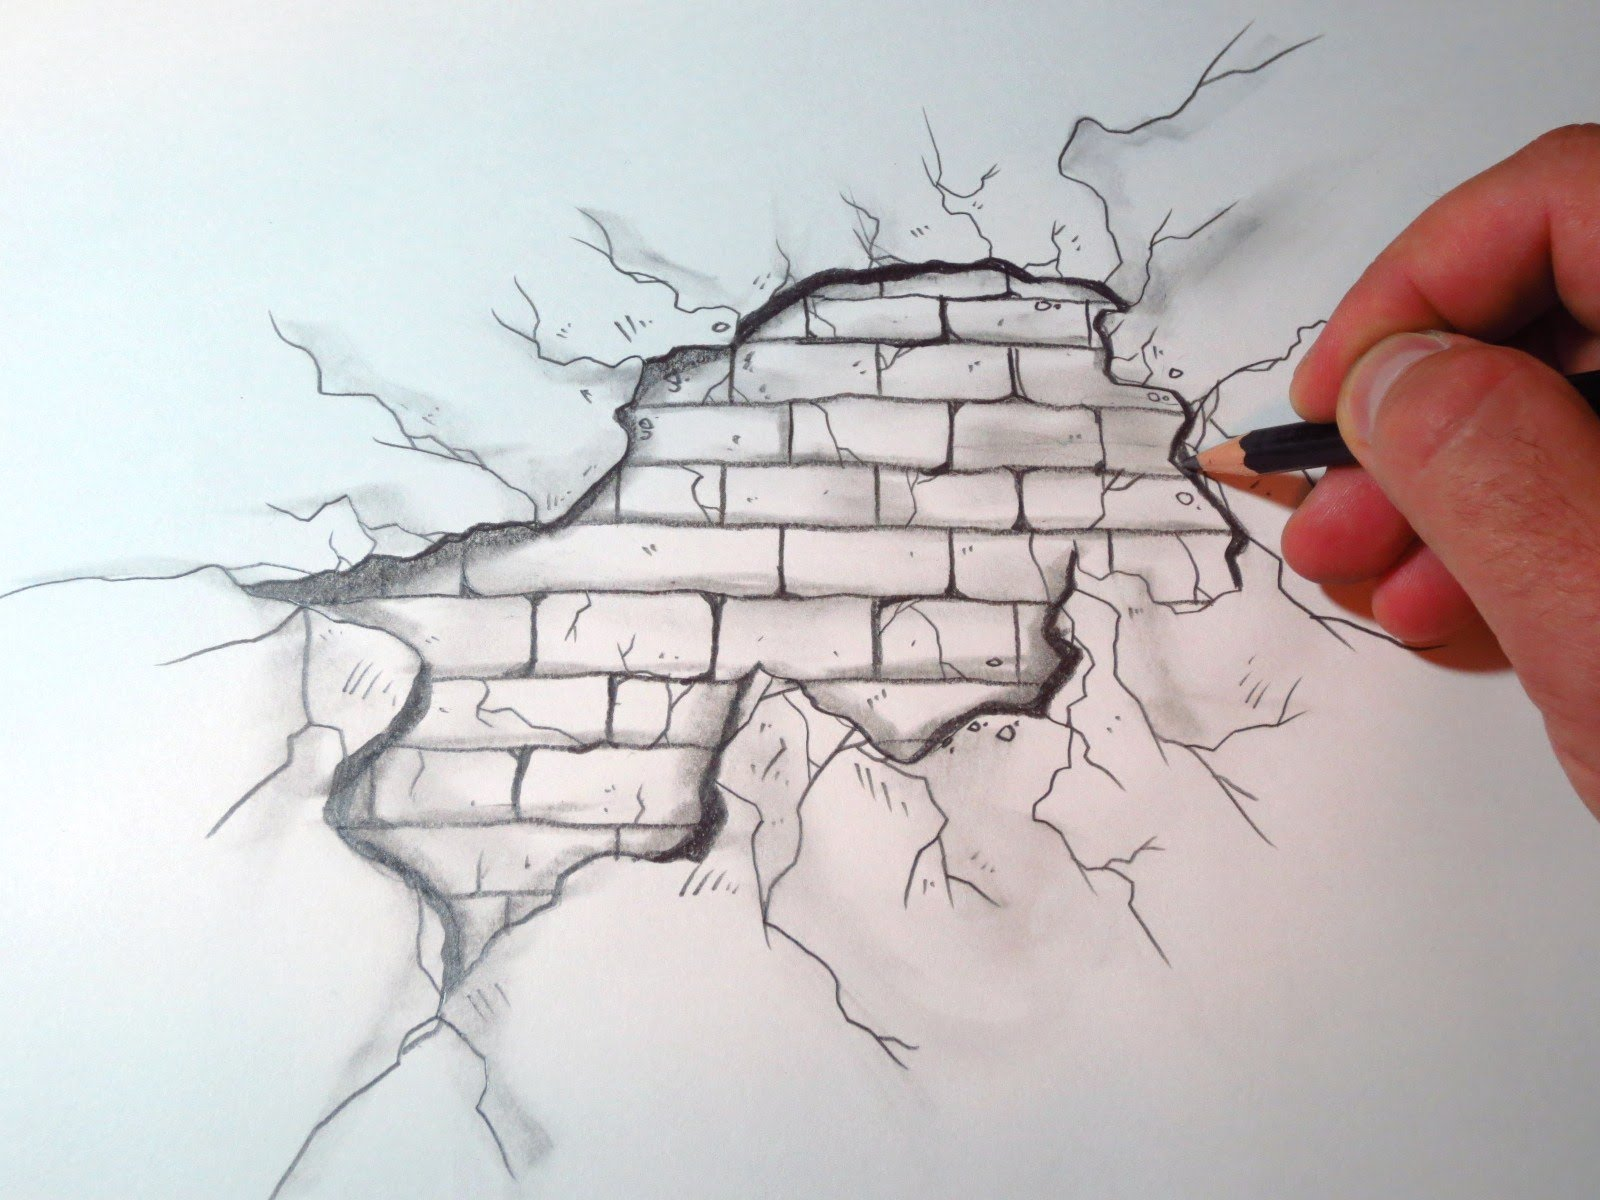 1600x1200 How To Draw A Cracked Brick Wall (The Original Video)